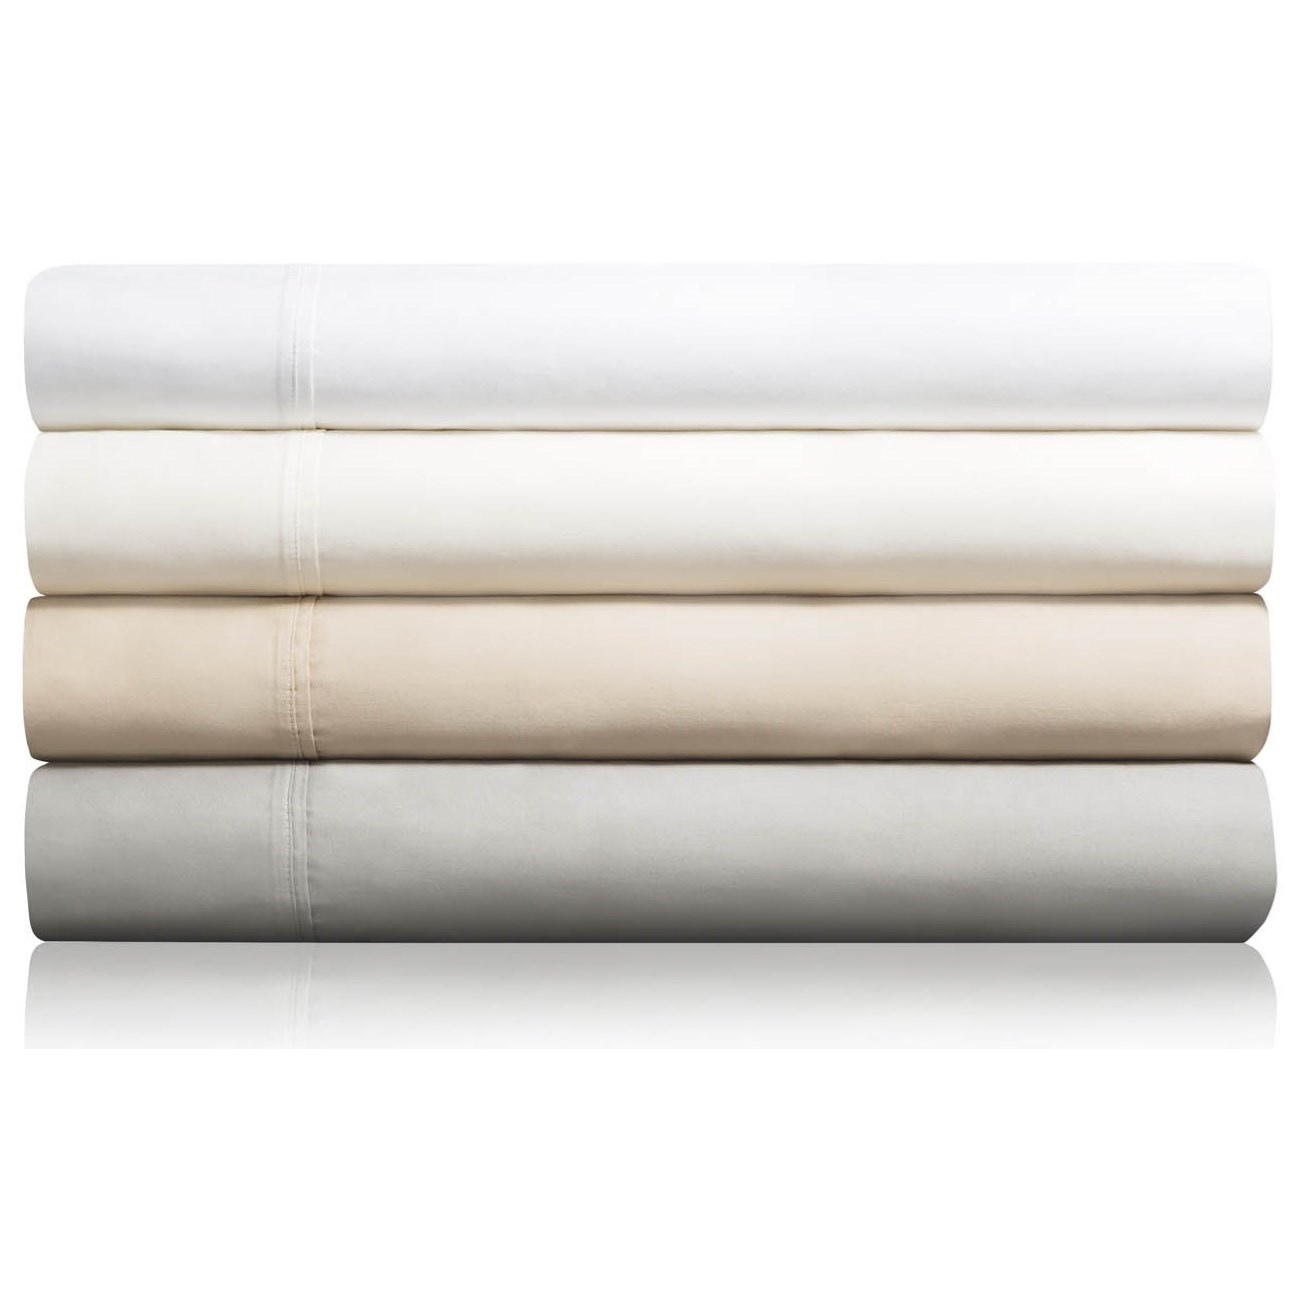 Cotton Blend King 600 TC Cotton Blend Sheet Set by Malouf at Northeast Factory Direct